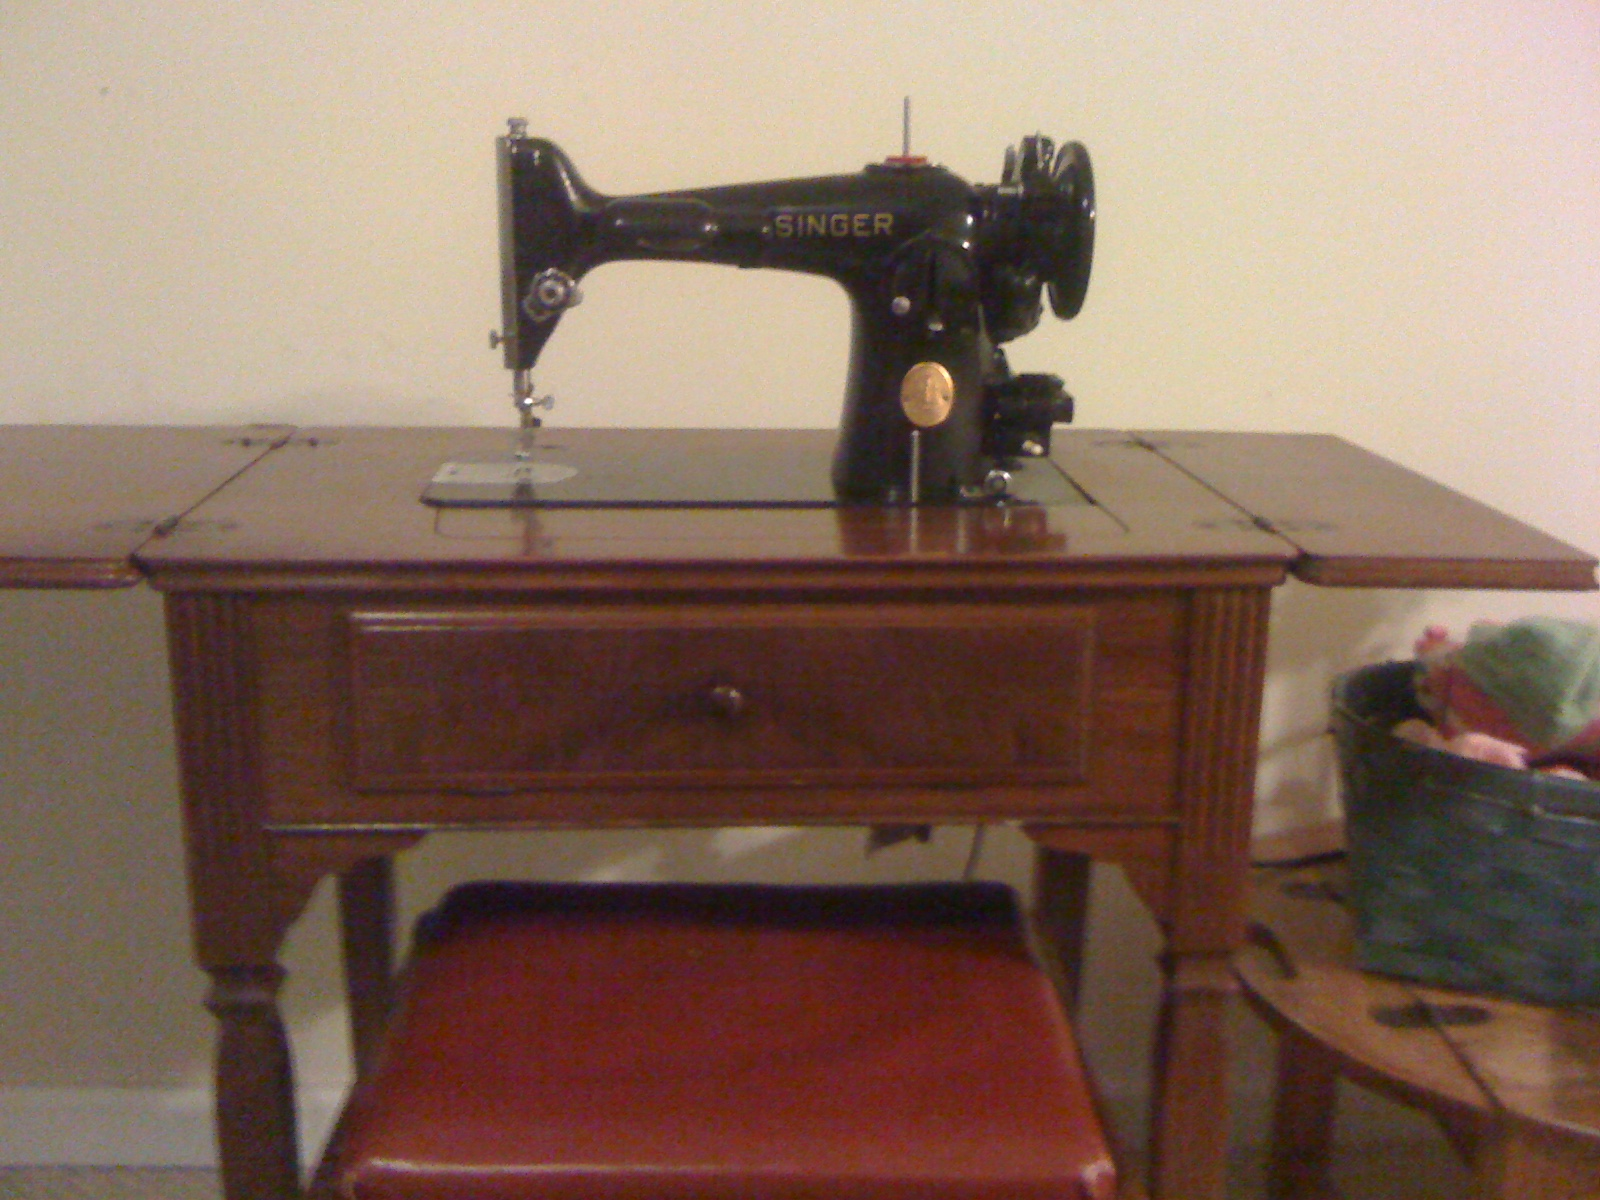 Running Stitches: Introducing My Machines - The Singer 201-2